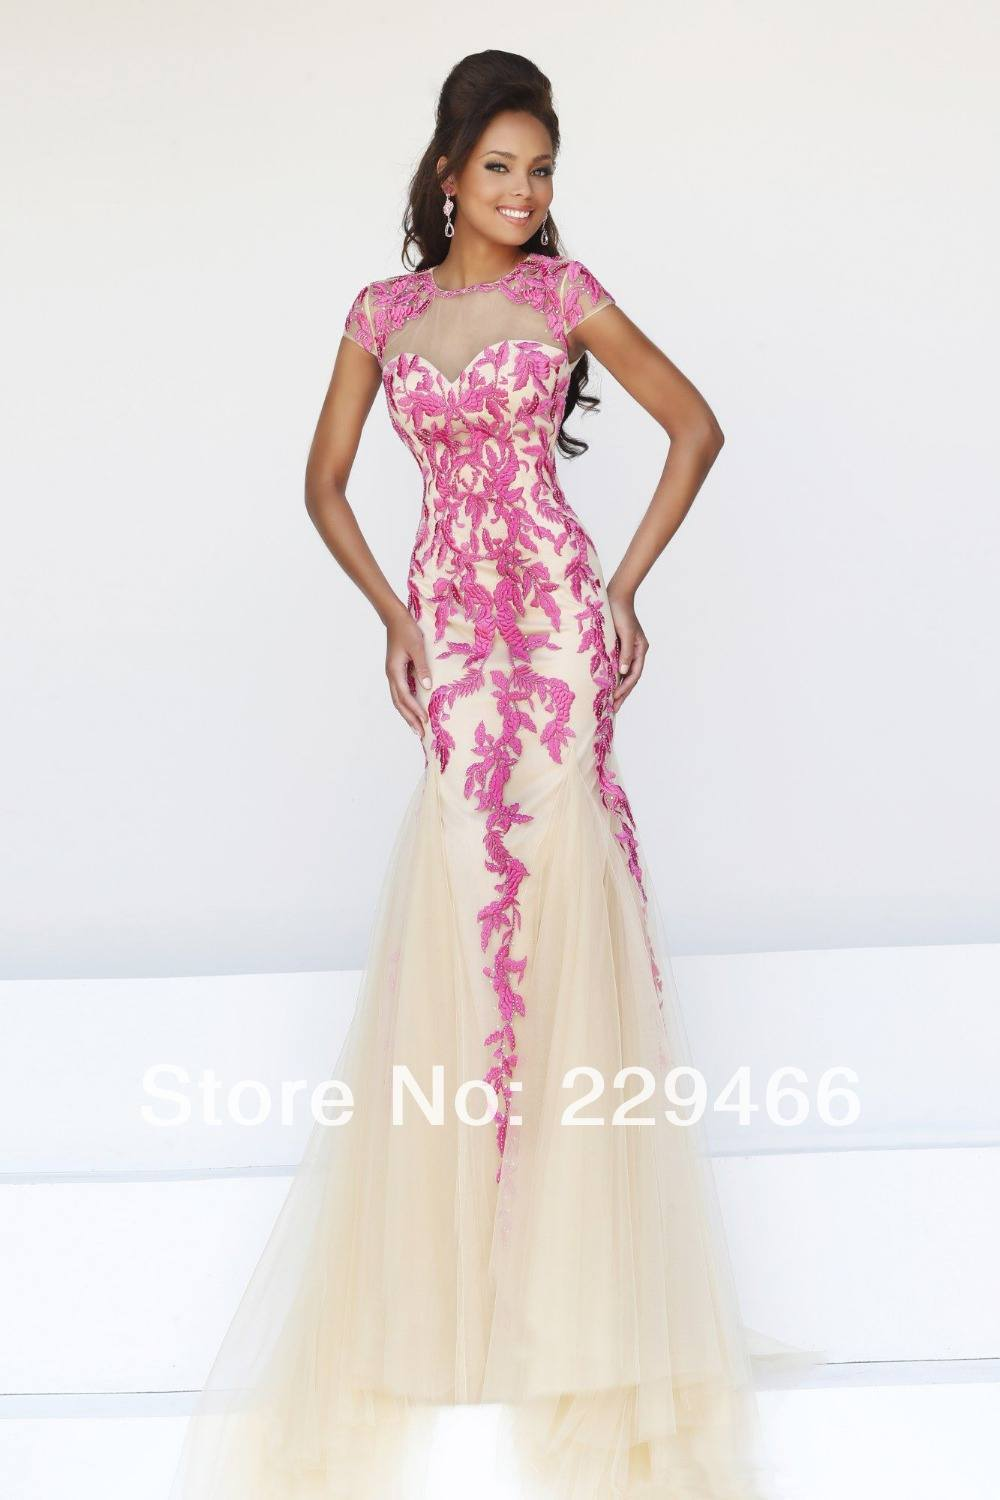 Chicago Press Release: Teen Girls Are You Looking For Prom Dresses ...